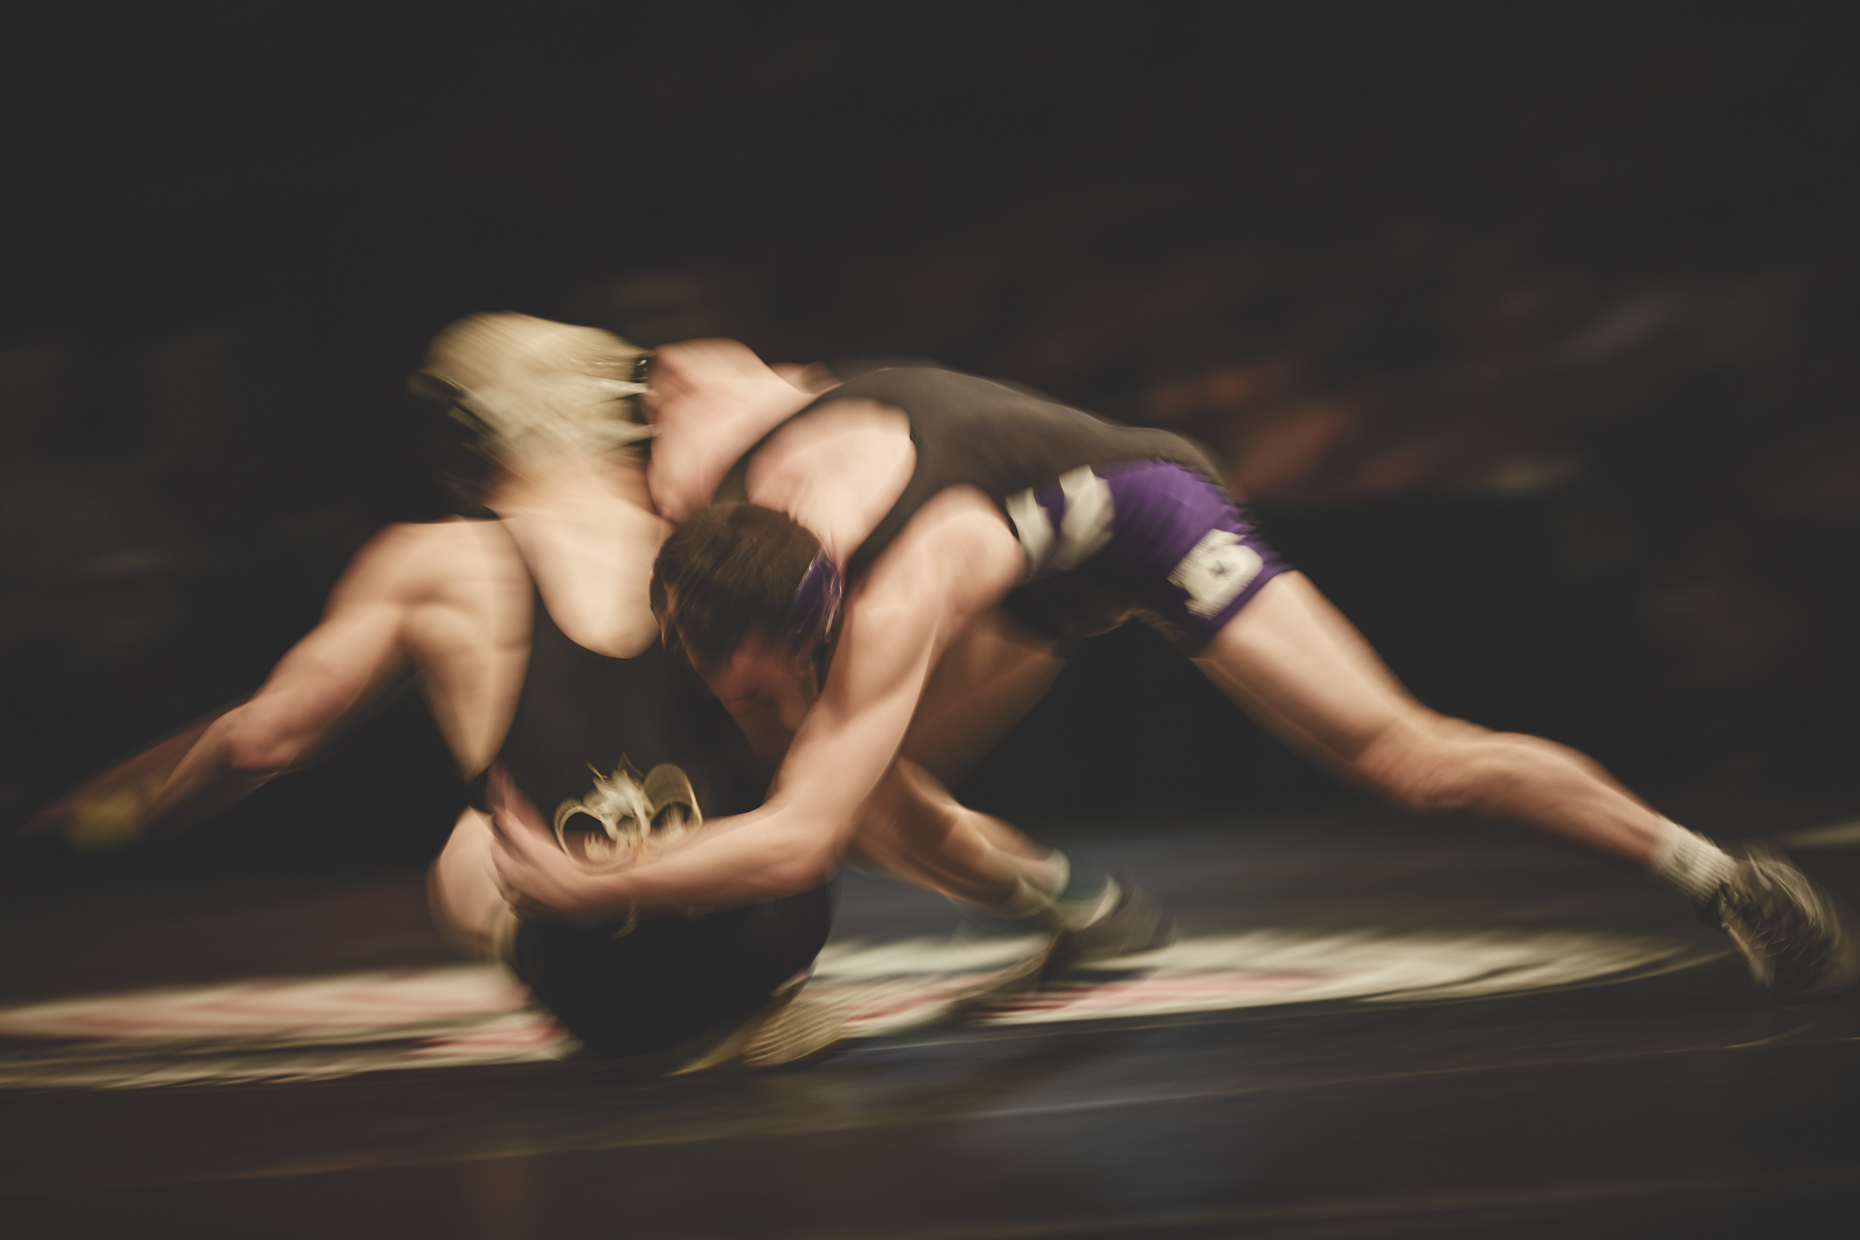 Action Photography Derek Israelsen 012 Wrestlers High School